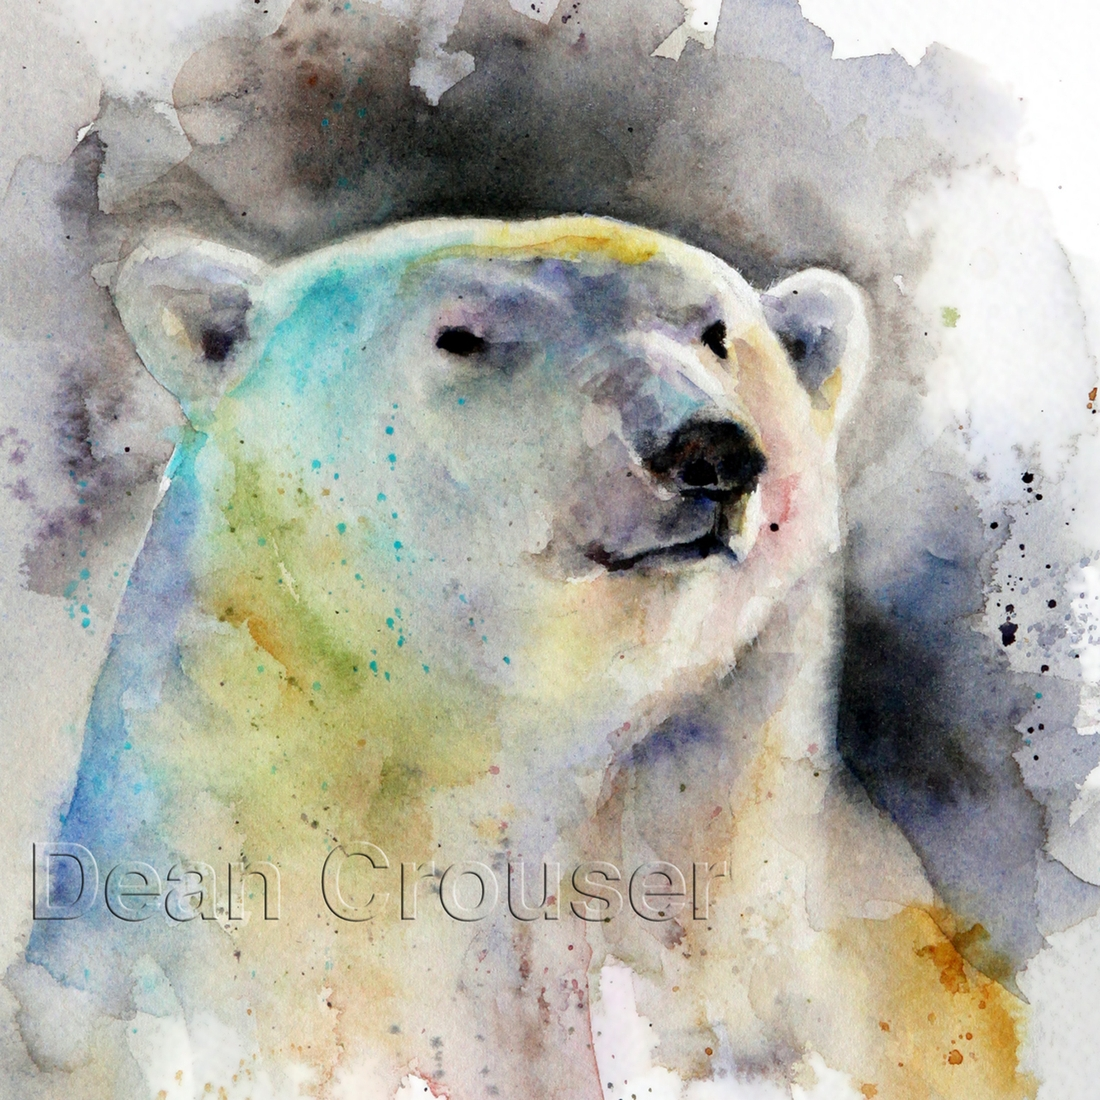 13-Polar-Bear-Dean-Crouser-A-Love-of-the-Outdoors-Spawns-Animal-Watercolor-Paintings-www-designstack-co